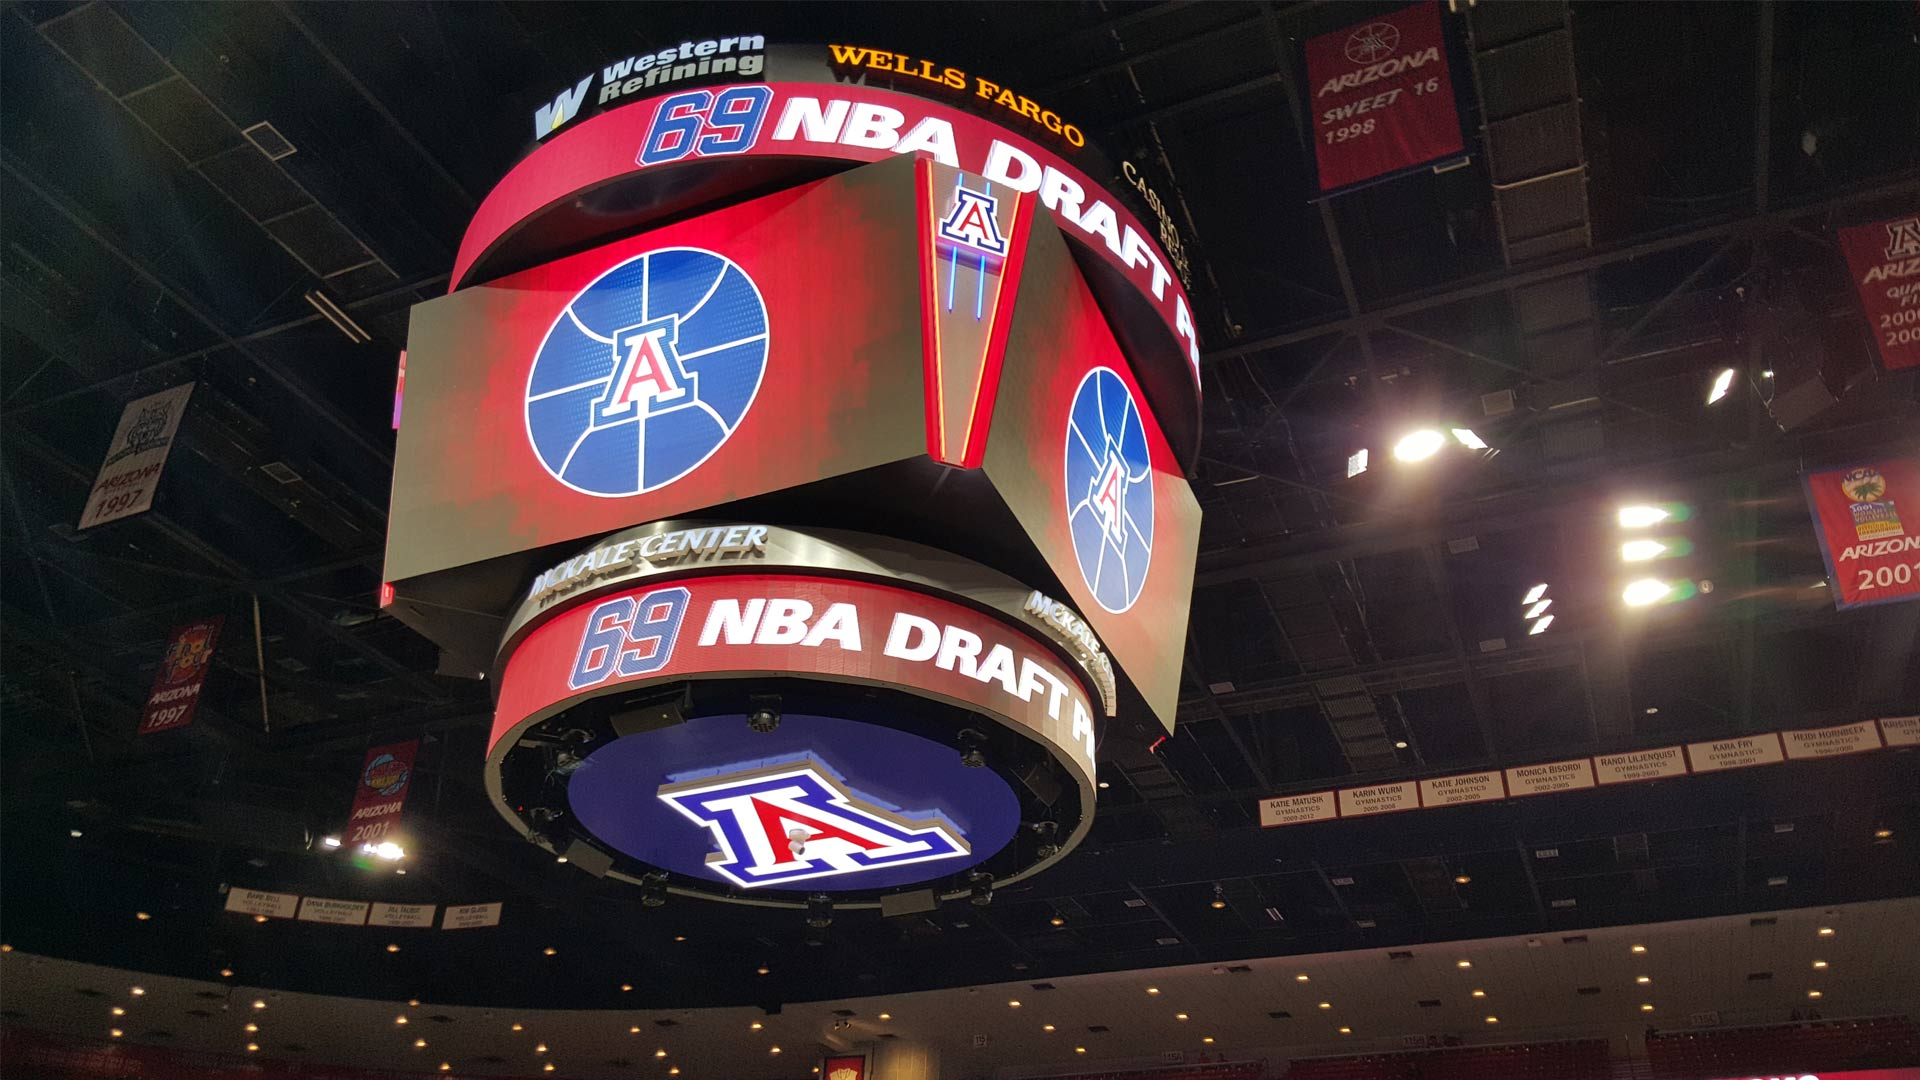 The scoreboard inside McKale Center.